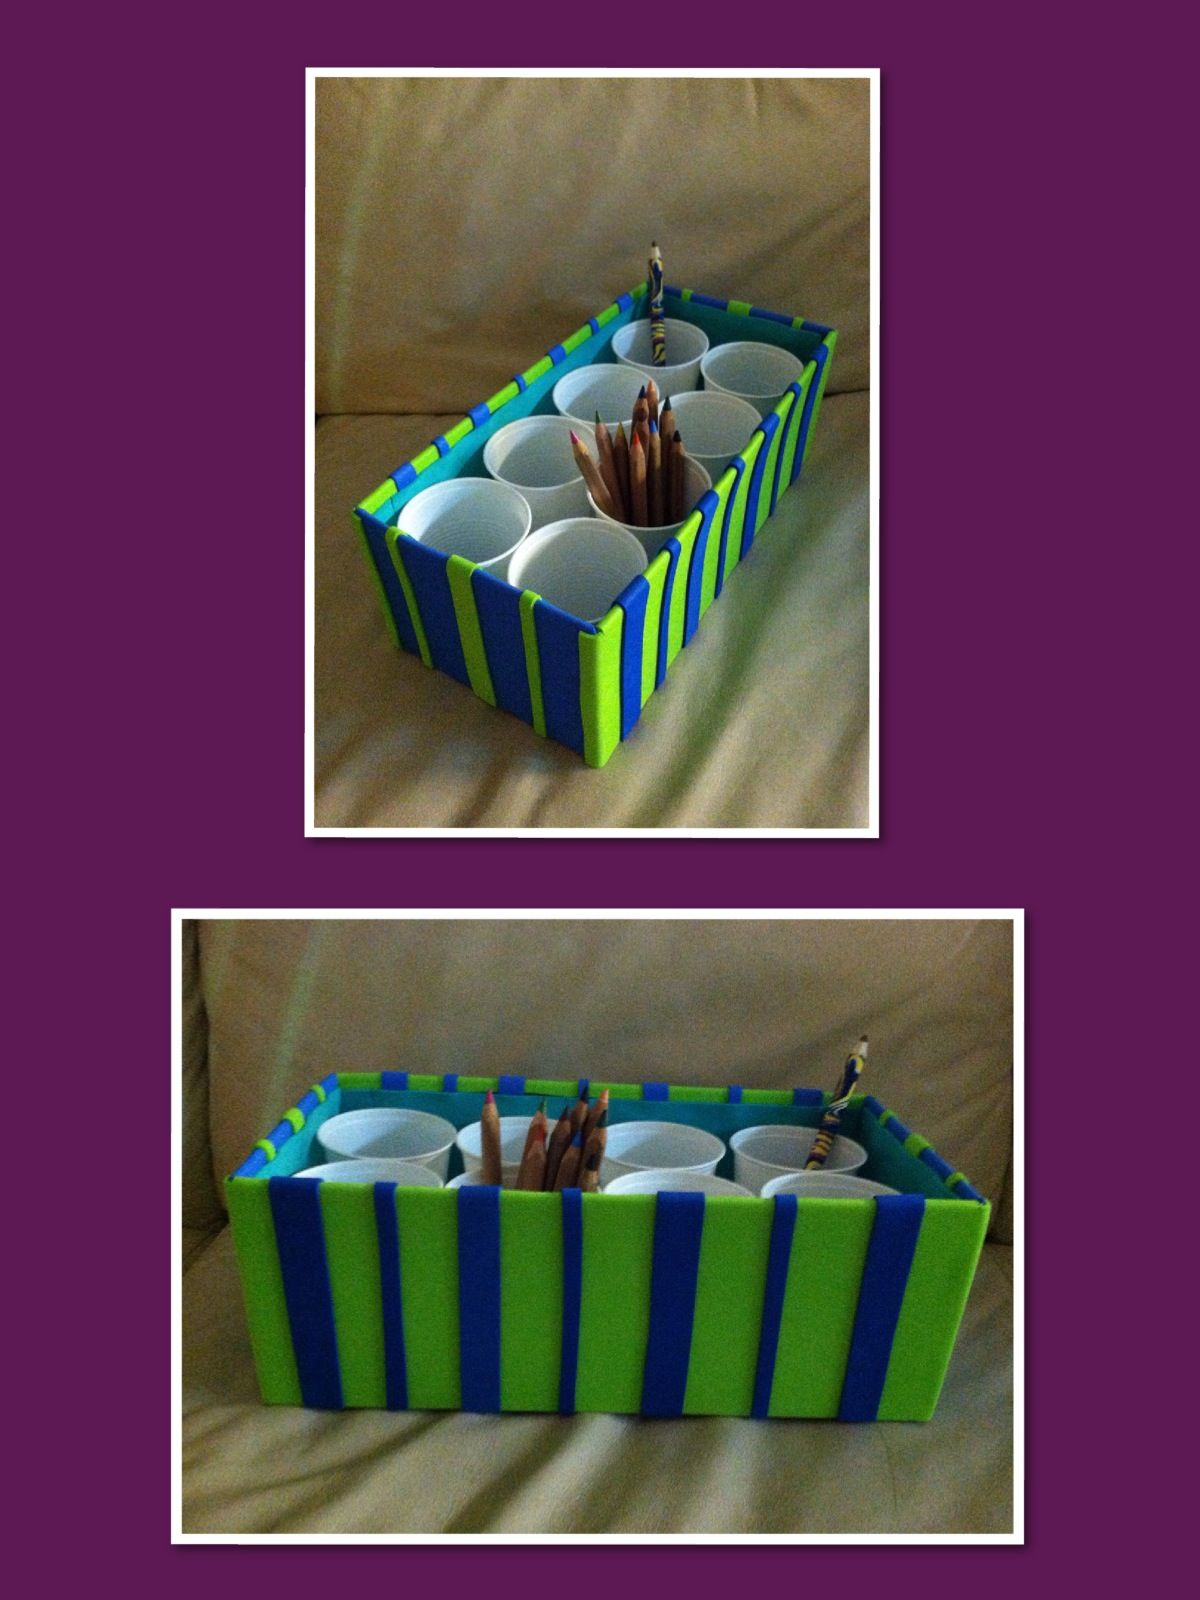 How To Decorate Shoe Boxes For Storage Diythis Is An Easy Way To Storage Your Kids Crayons Pencils